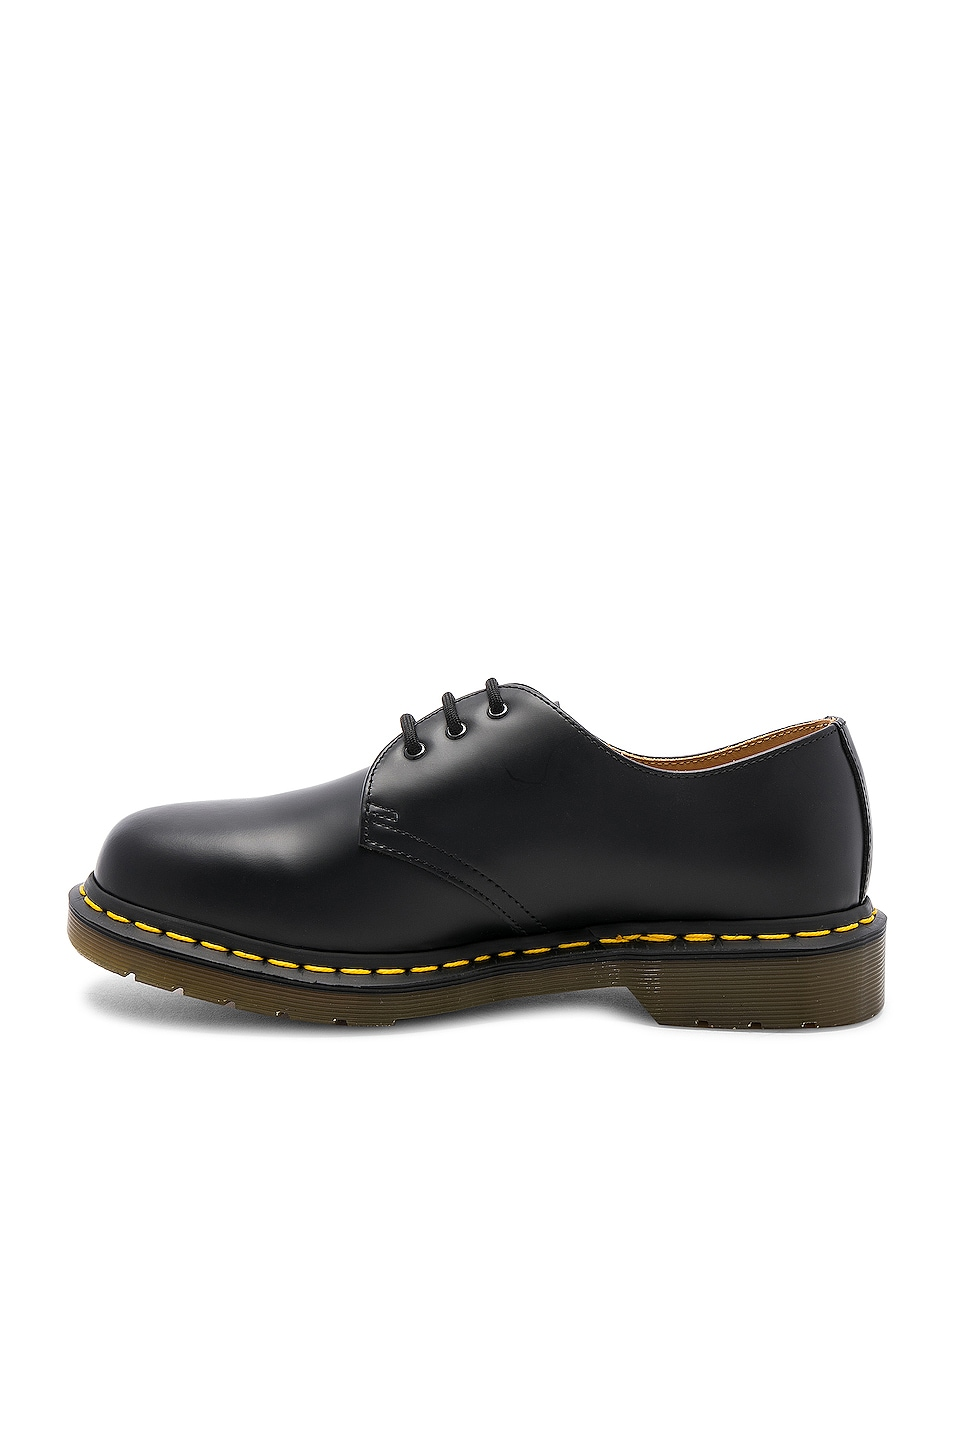 Image 5 of Dr. Martens 1461 3 Eye Gibson in Black